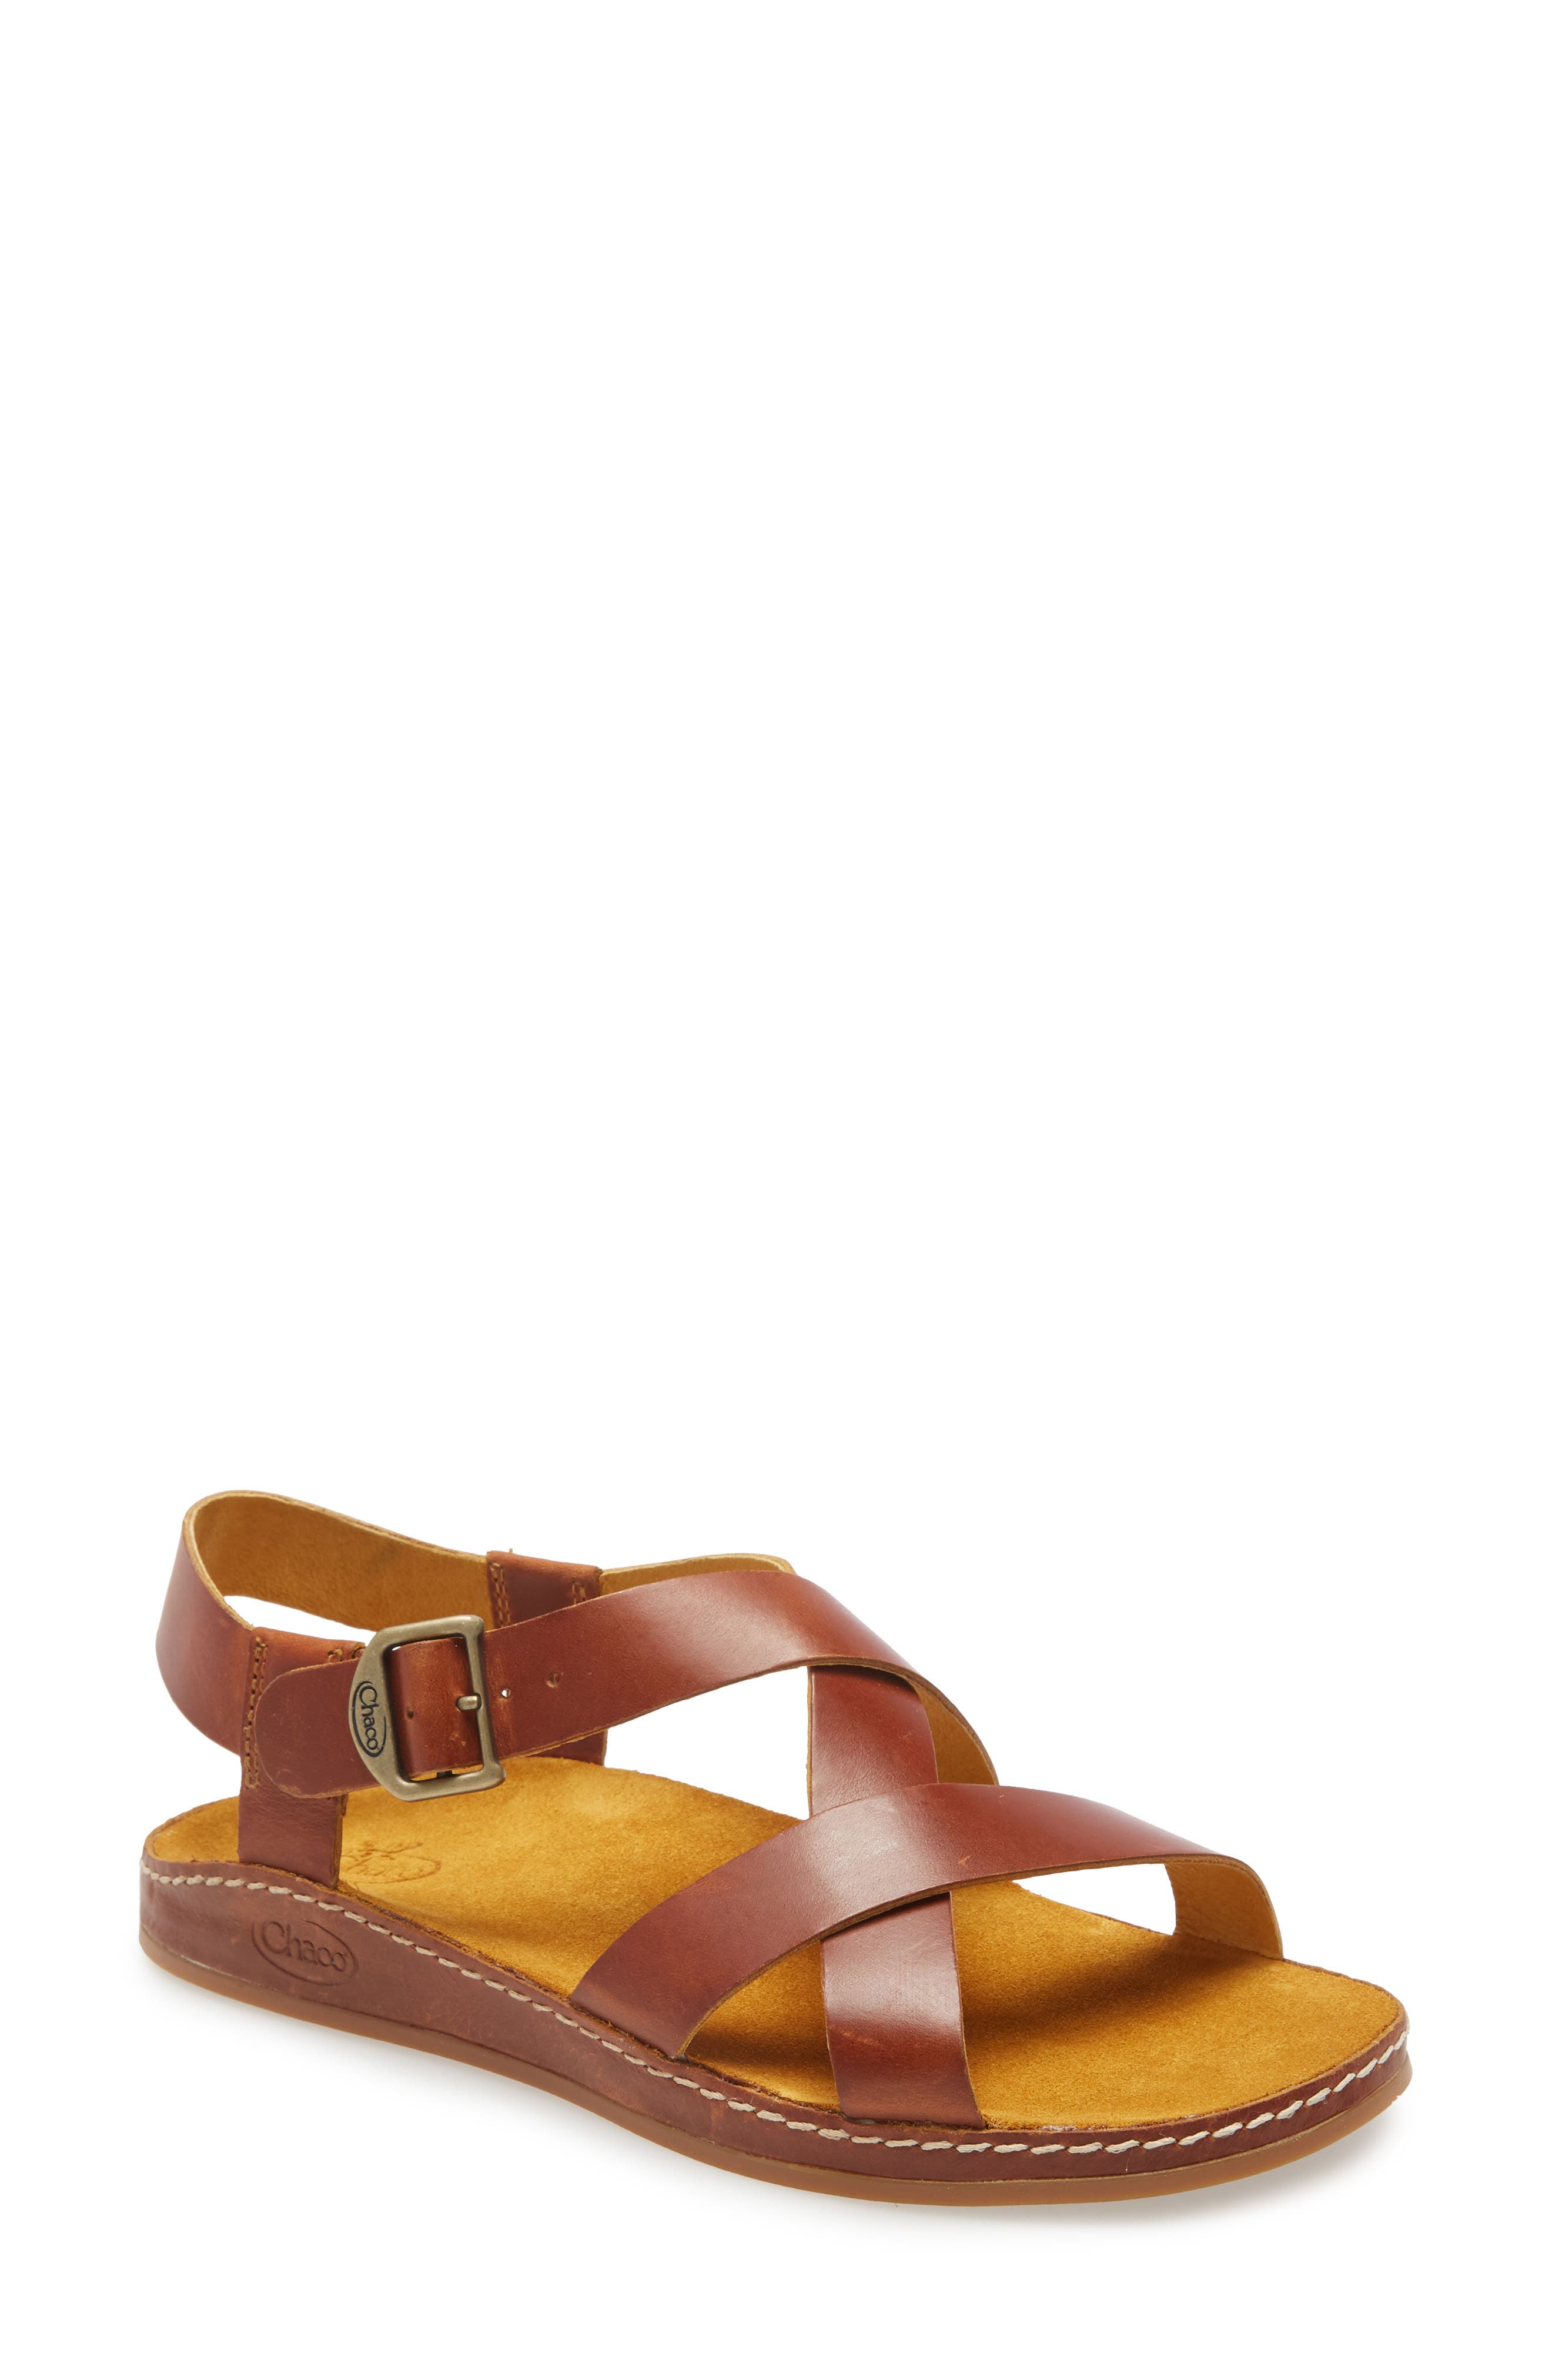 Women's Chaco Sale \u0026 Clearance | Nordstrom